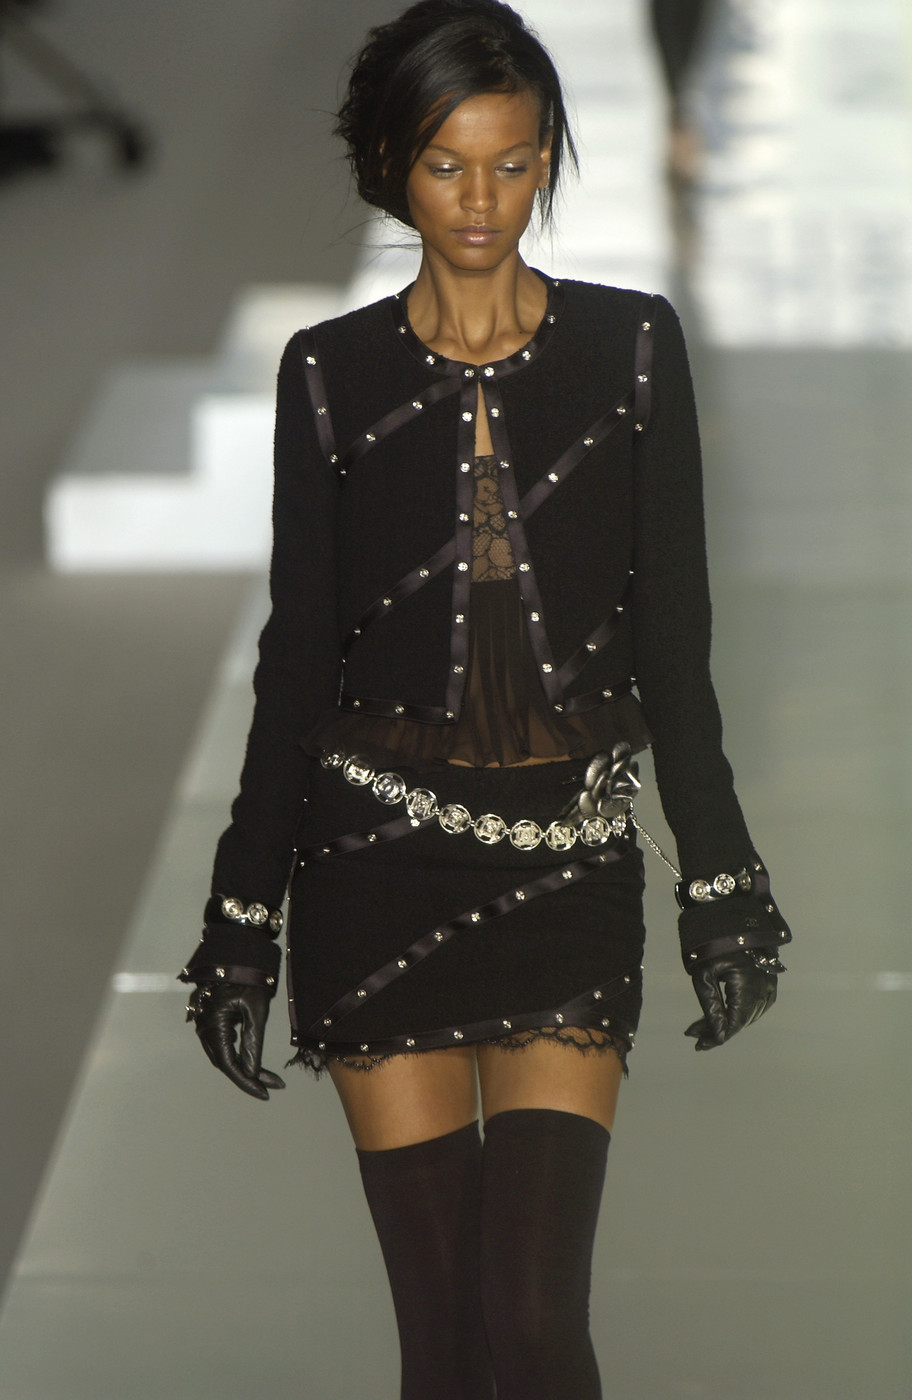 Chanel Fall 2003 Runway Pictures Livingly